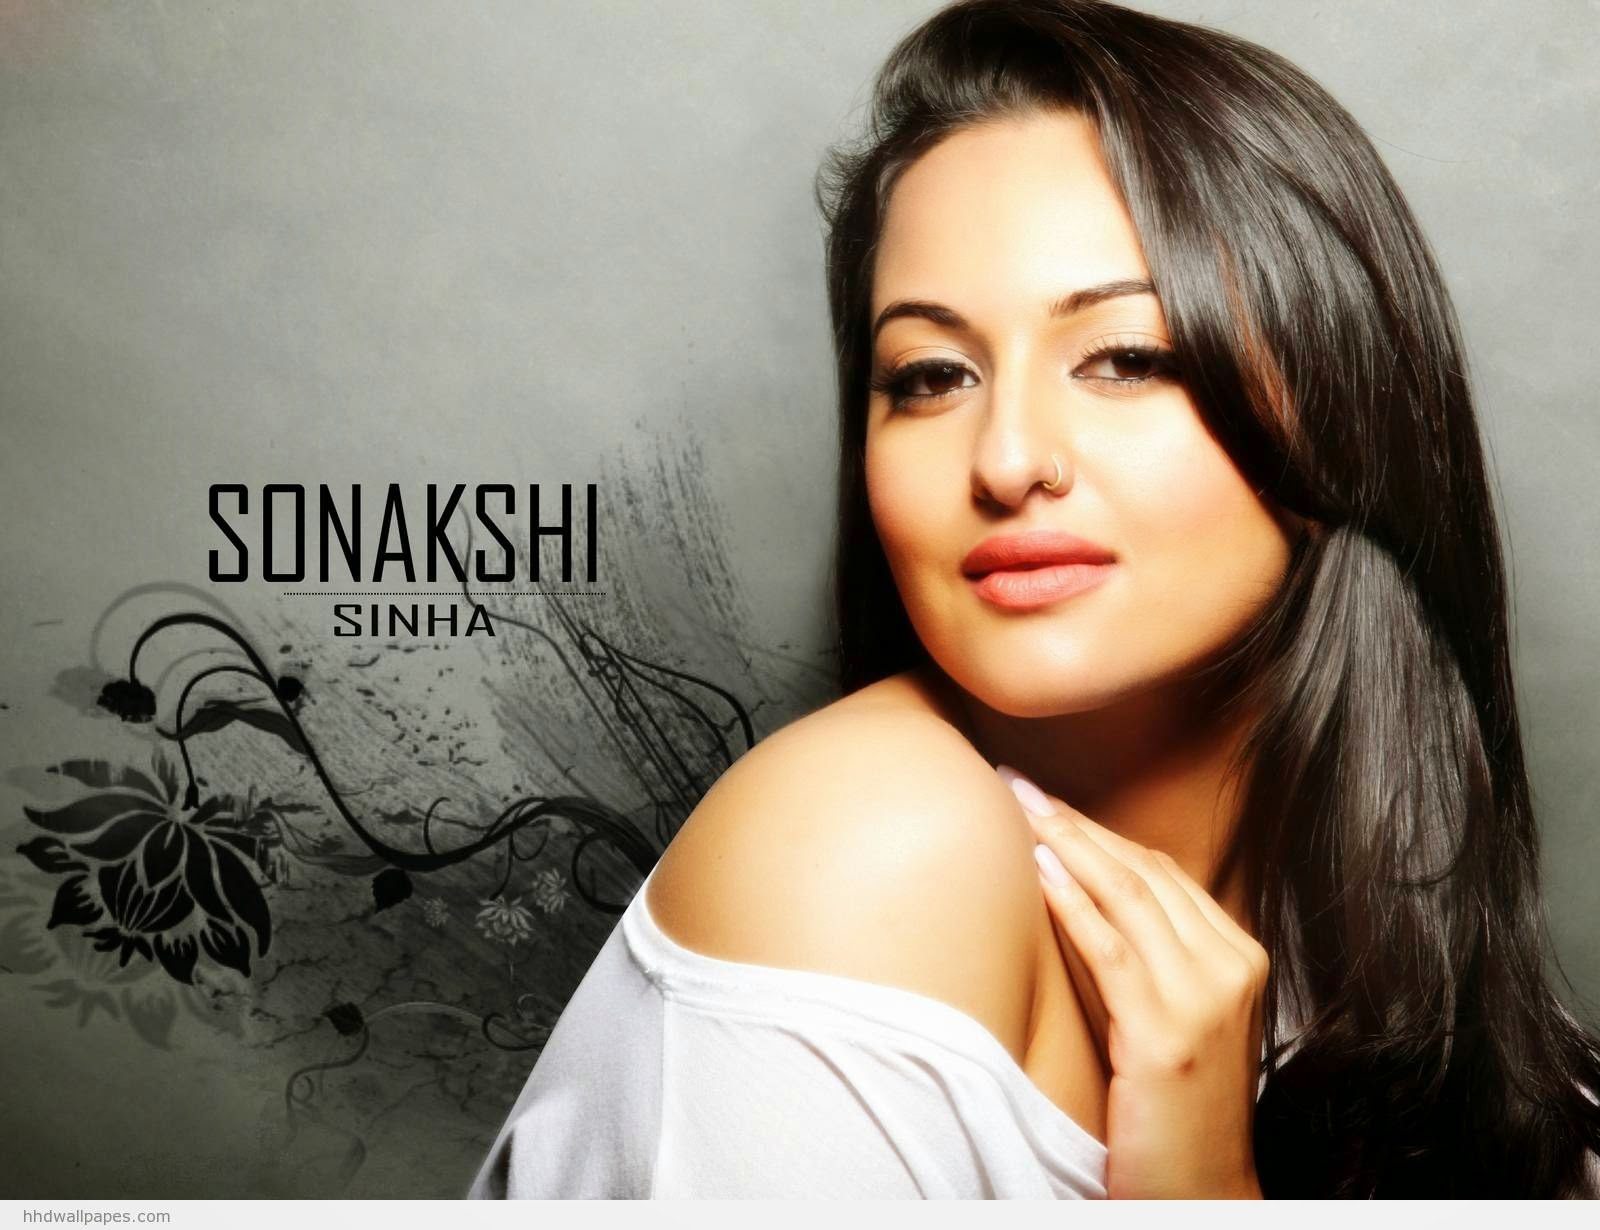 Hot Sonakshi Sinha HD wallpapers Free Download